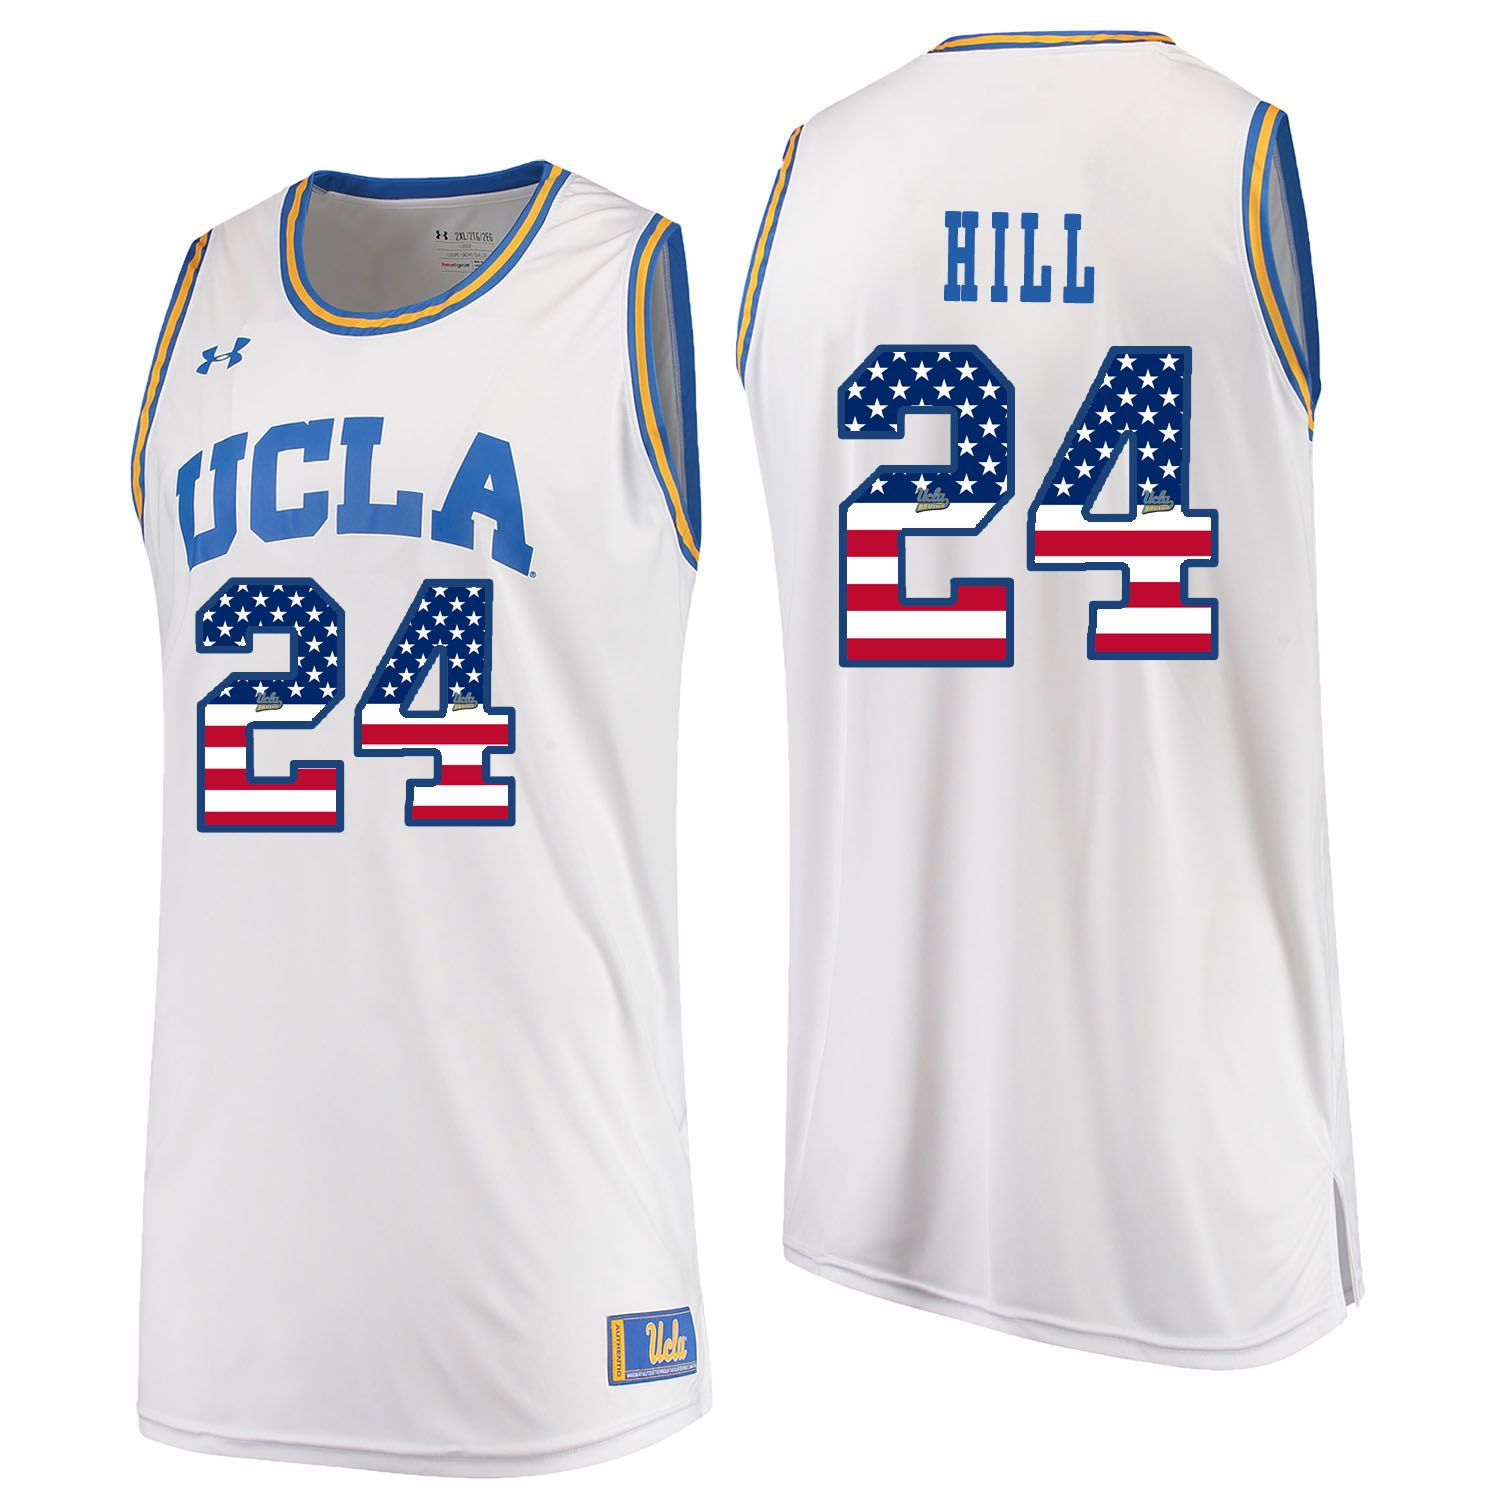 Men UCLA UA 24 Hill White Flag Customized NCAA Jerseys